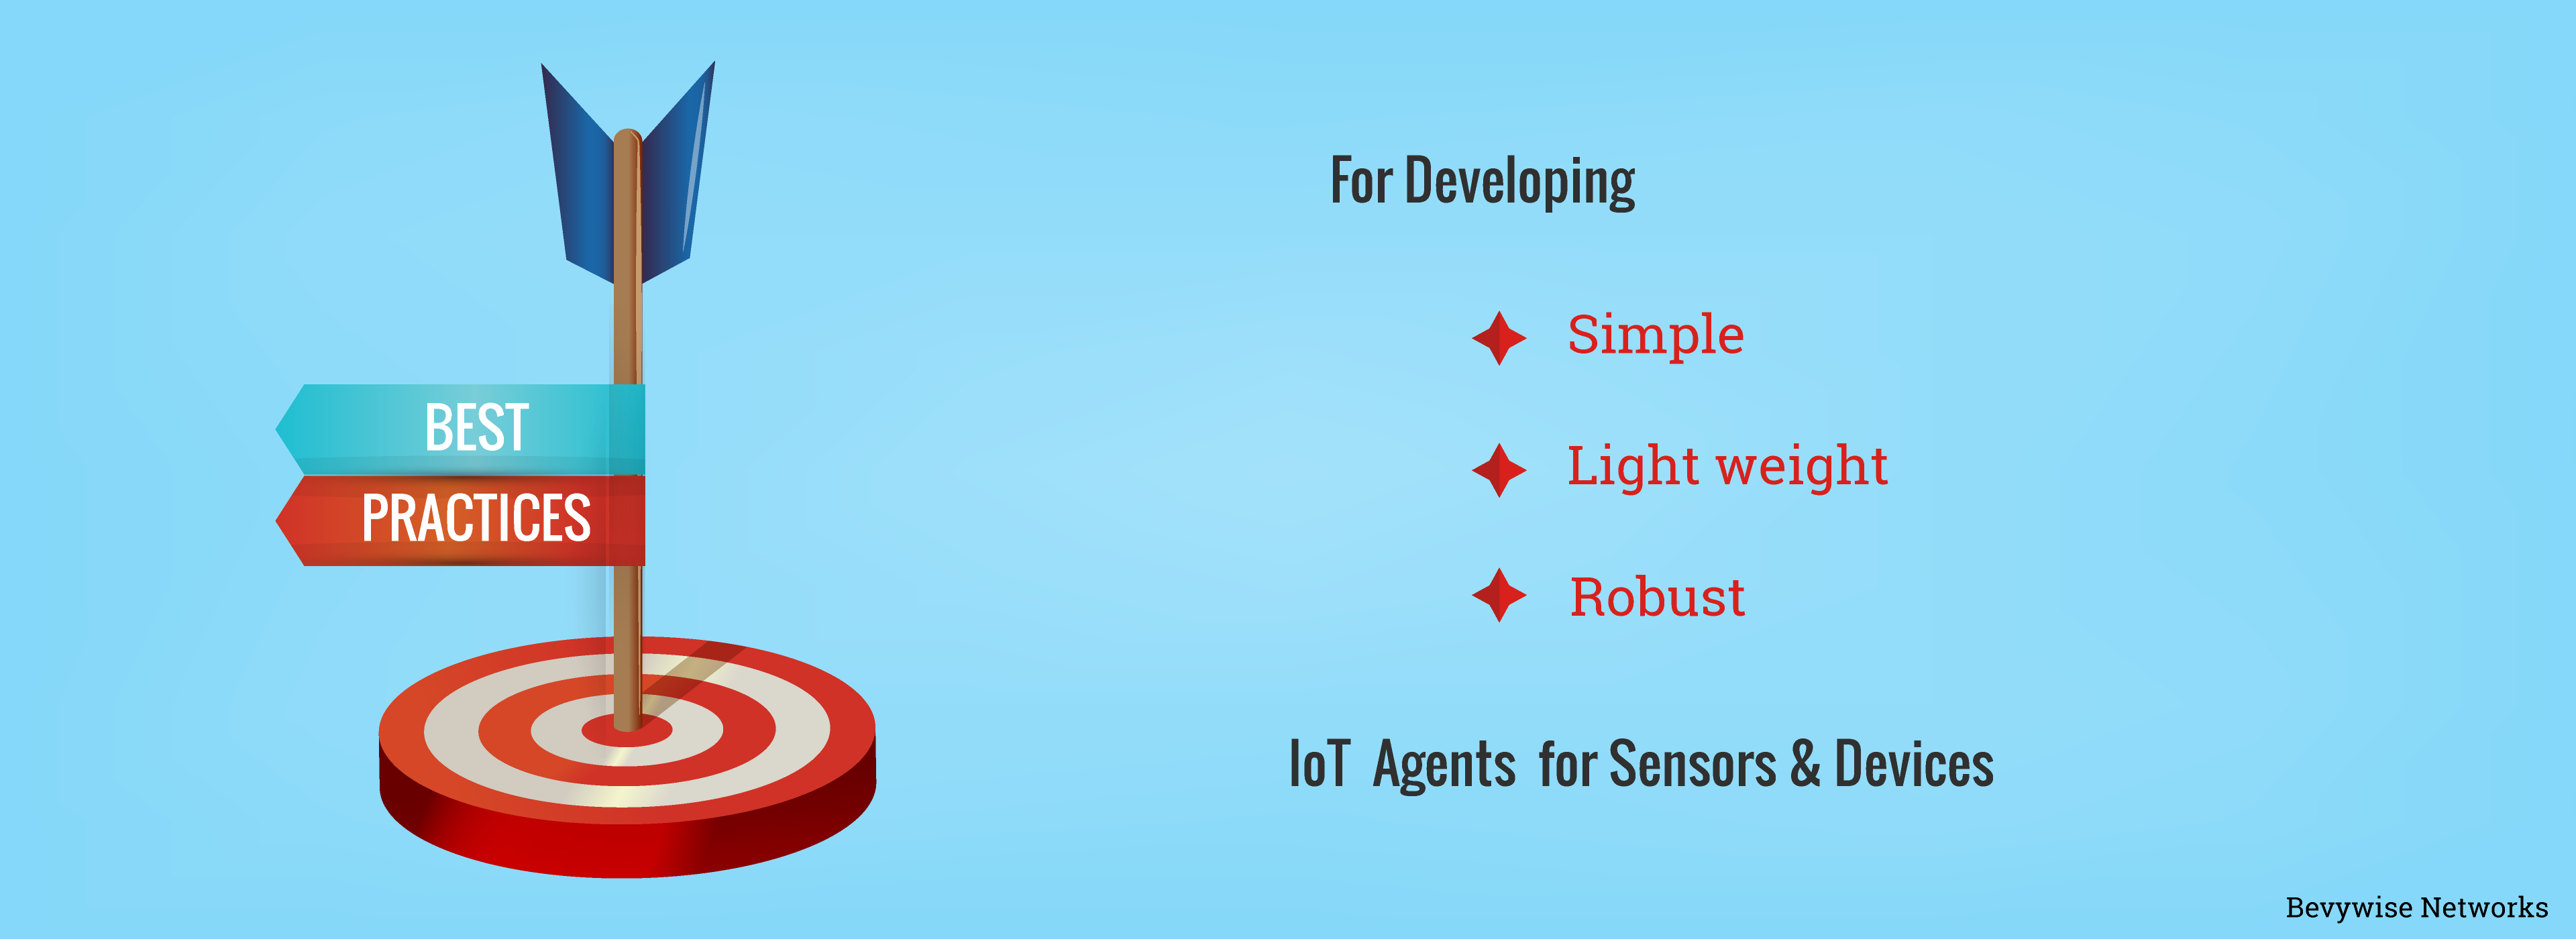 best practices of developing iot mqtt agents